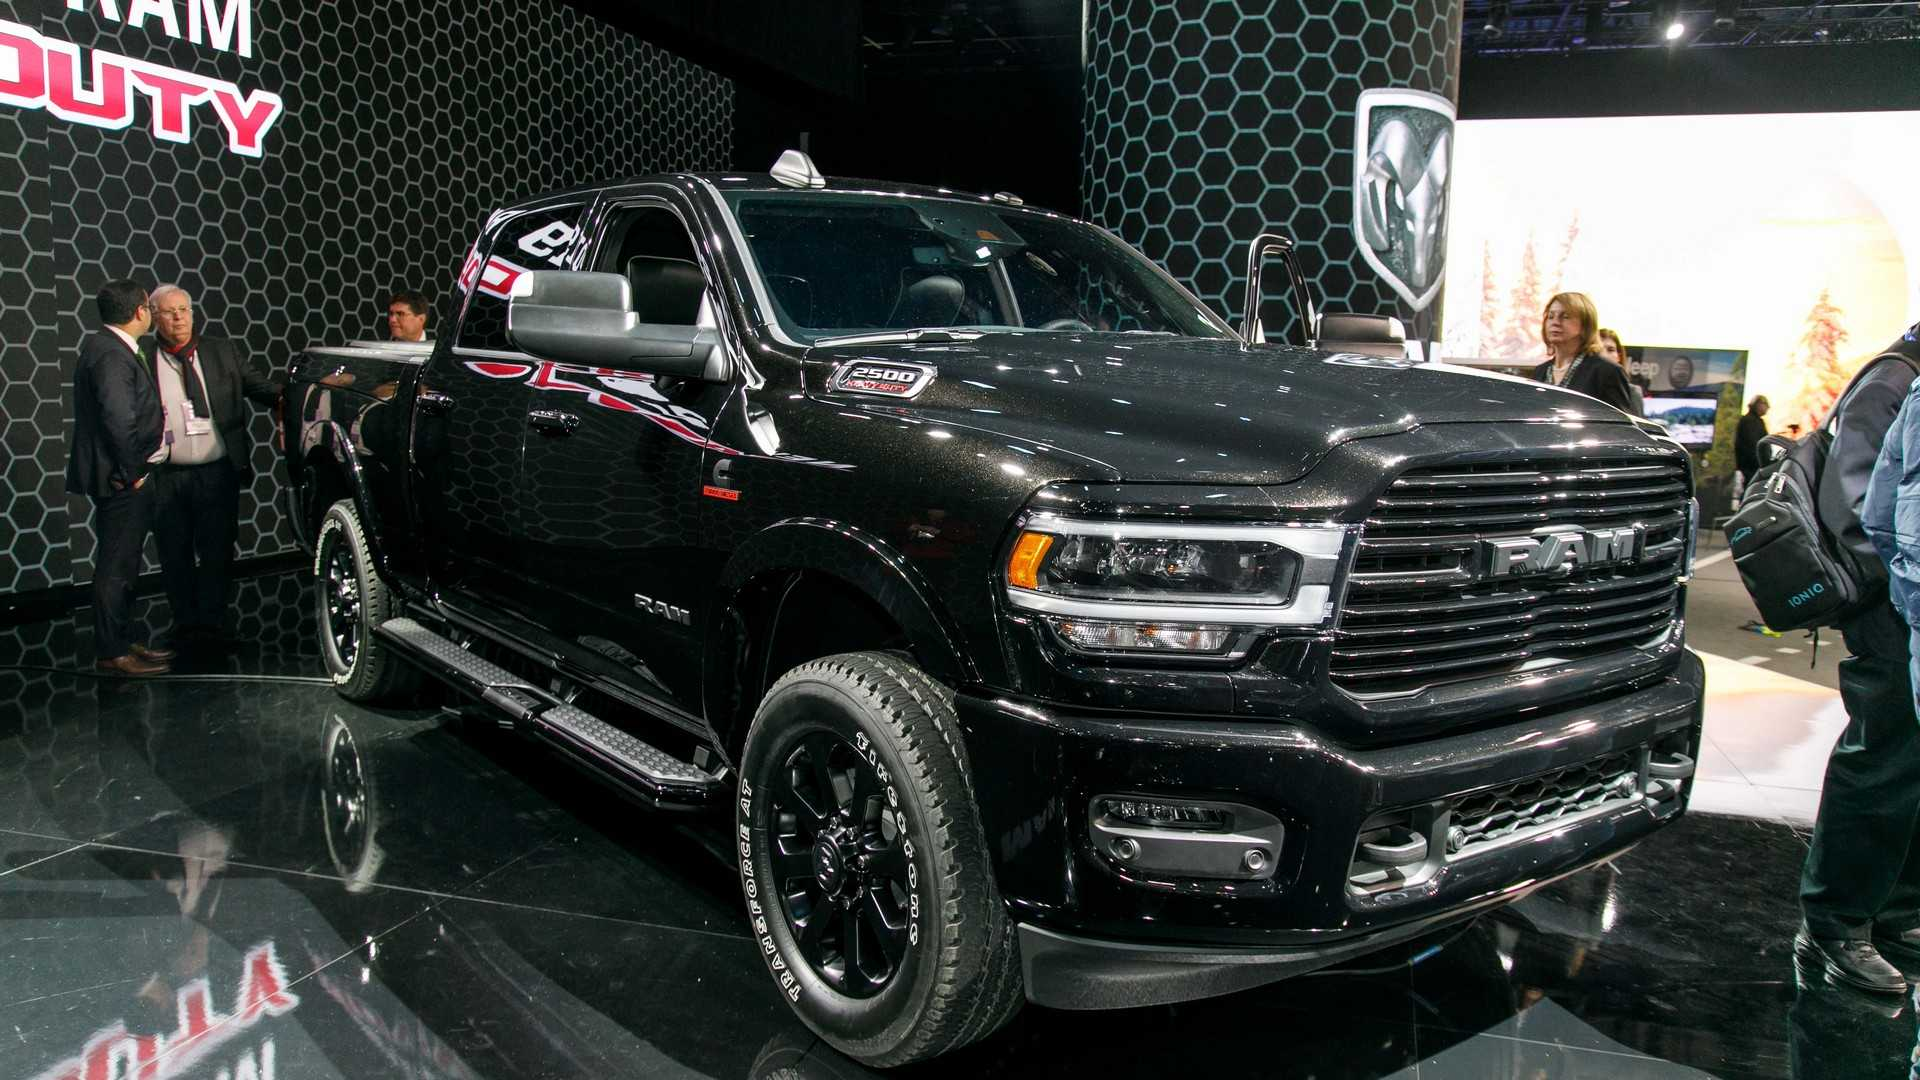 68 The Best 2019 Ram 2500 Diesel Price And Review